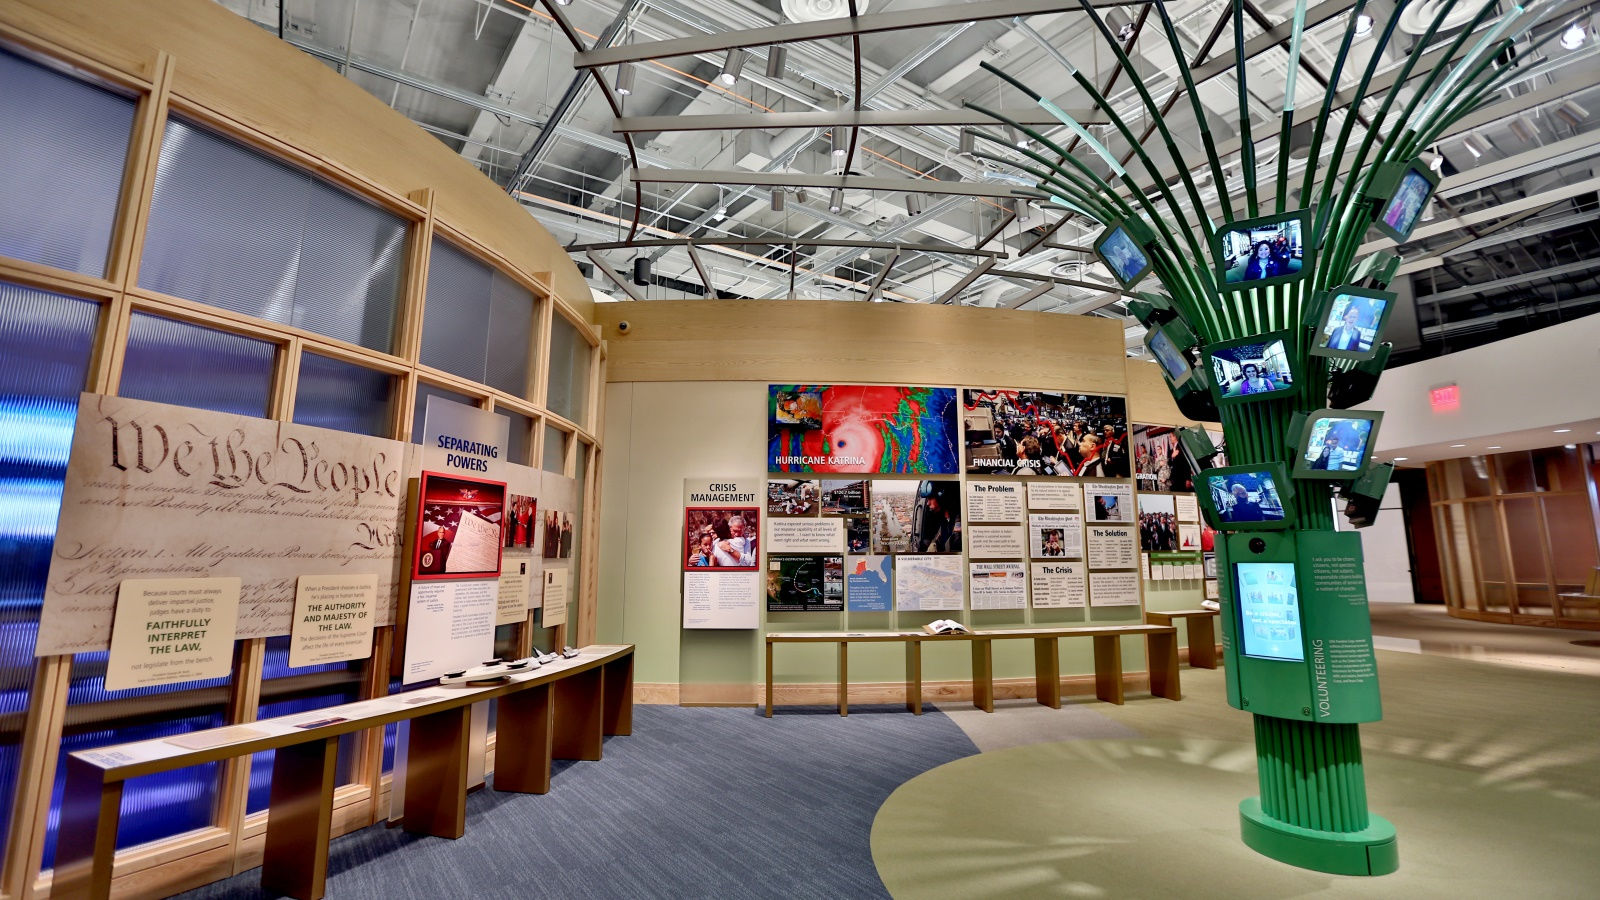 Things to do in Dallas - George W. Bush Presidential Library and Museum